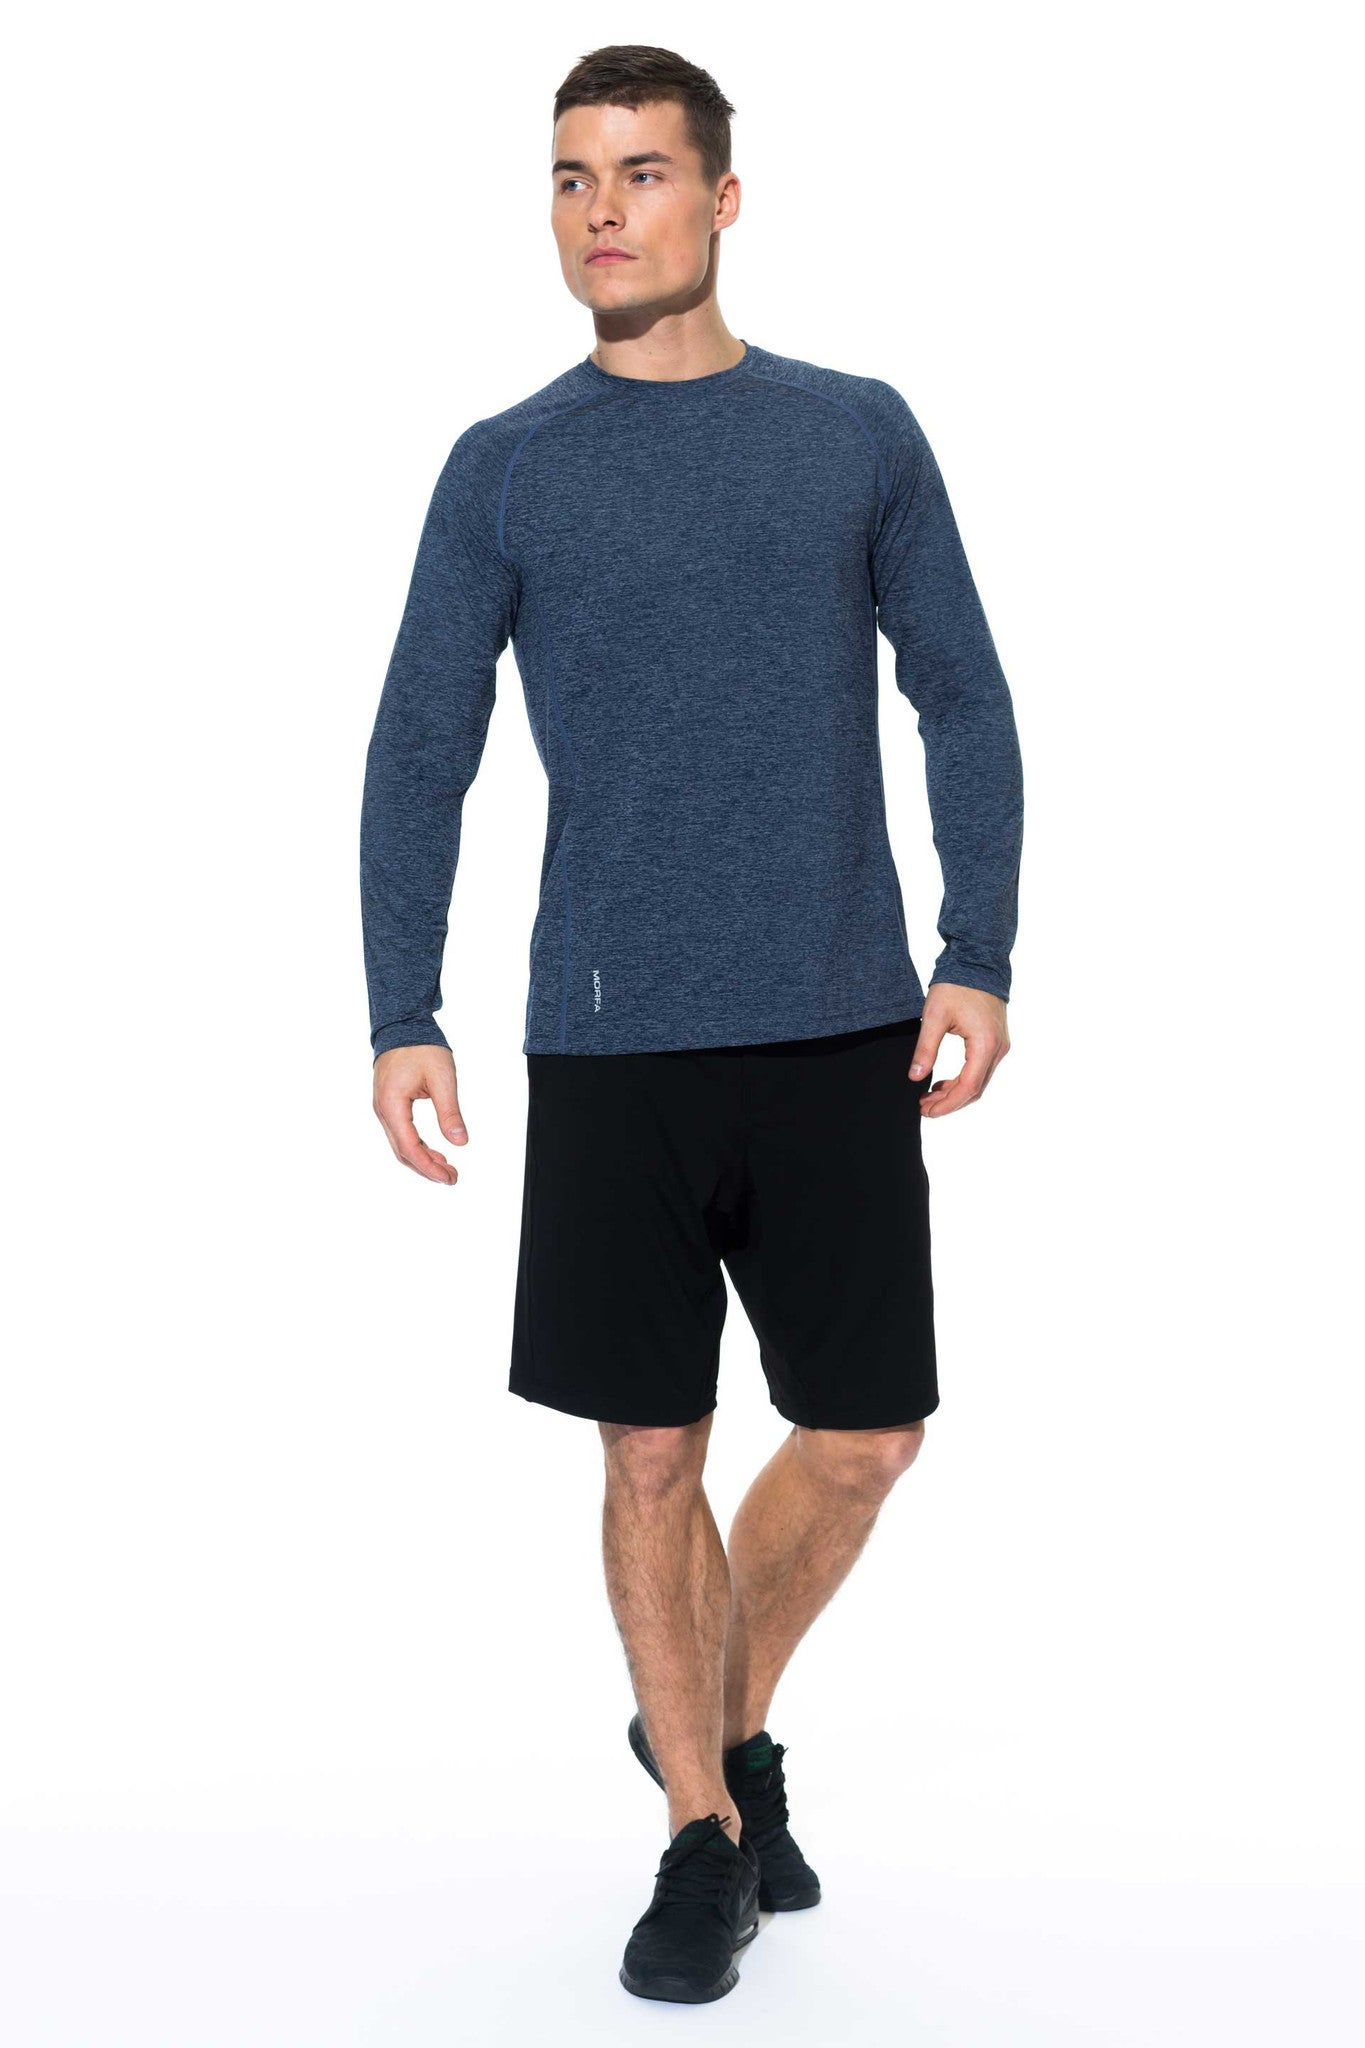 FOCUS LONG SLEEVE - ECLIPSE - ( SIZES: S & XL